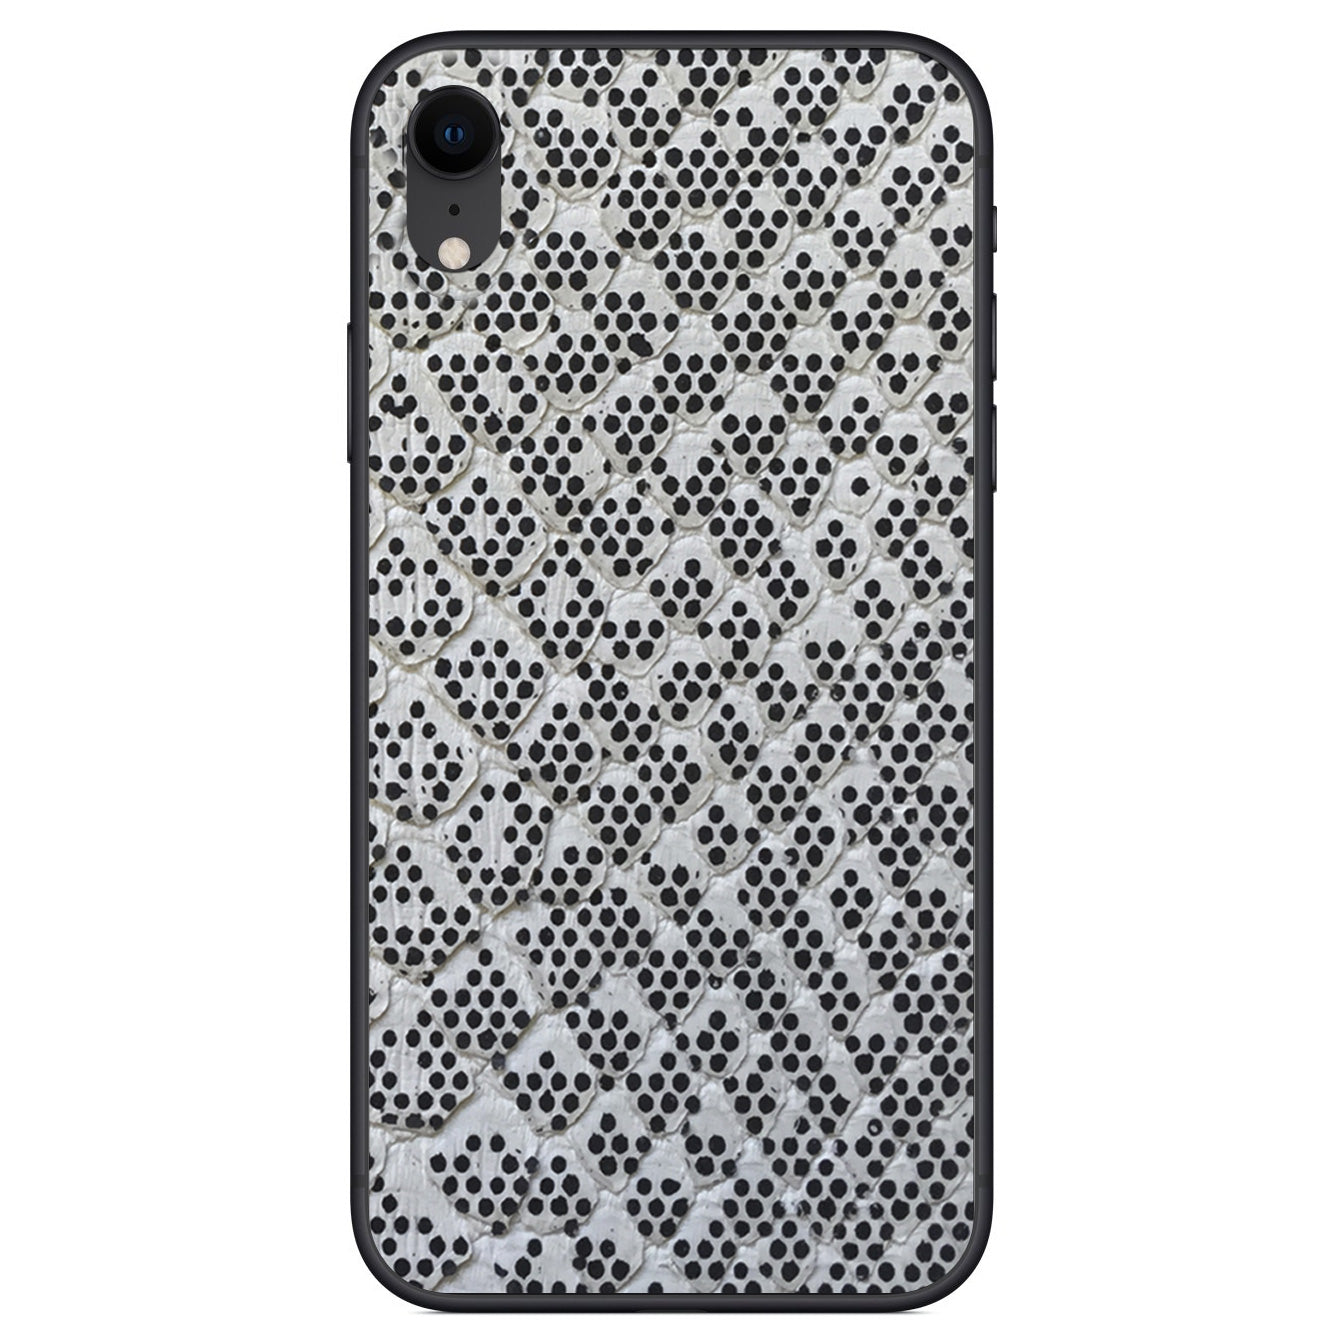 Pixelated Python Back iPhone XR Leather Skin